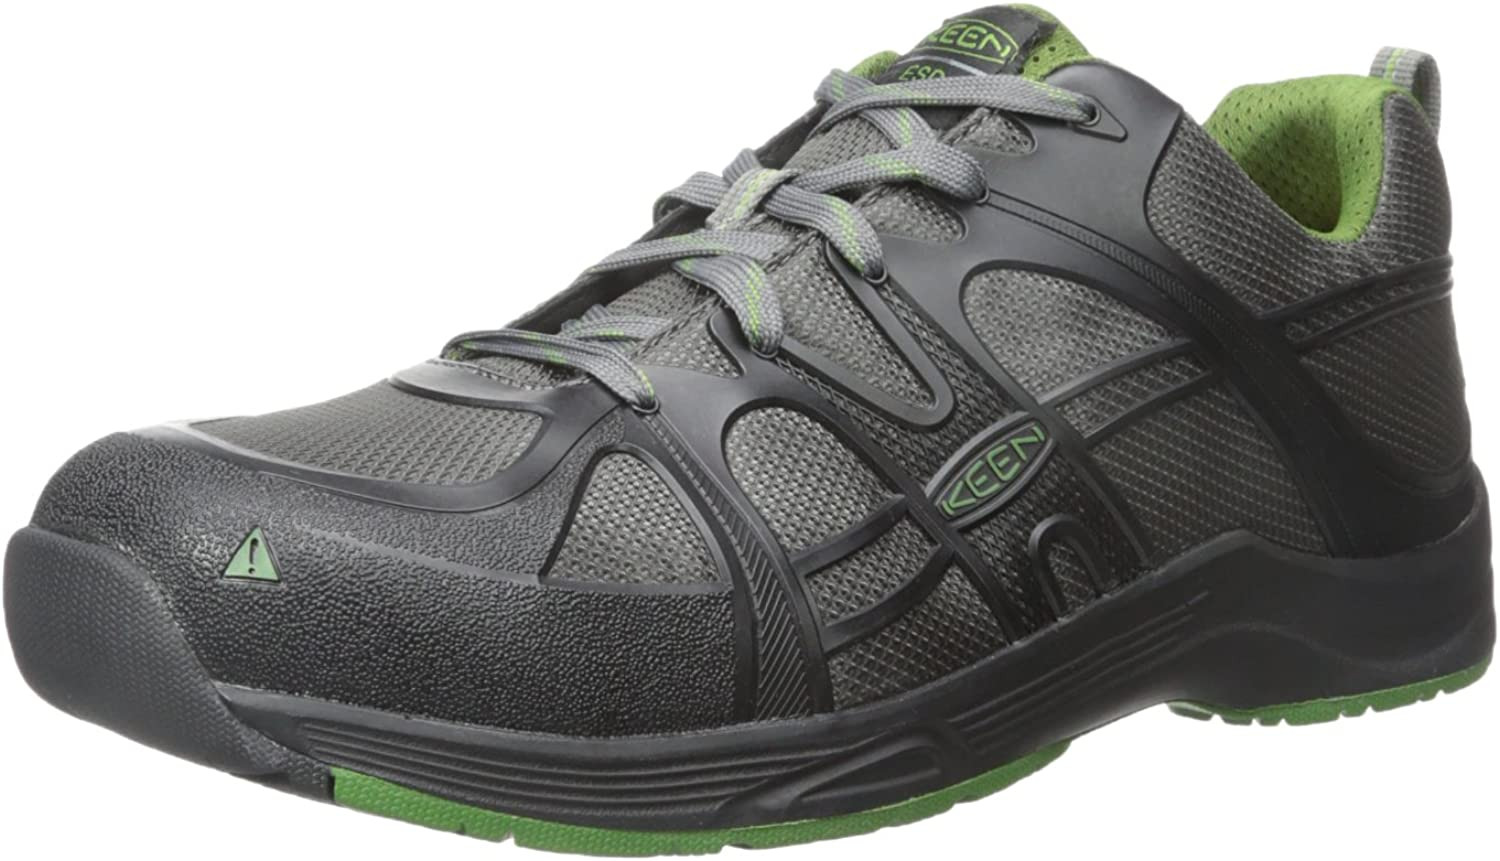 KEEN Utility Men's Durham at ESD Work Boot